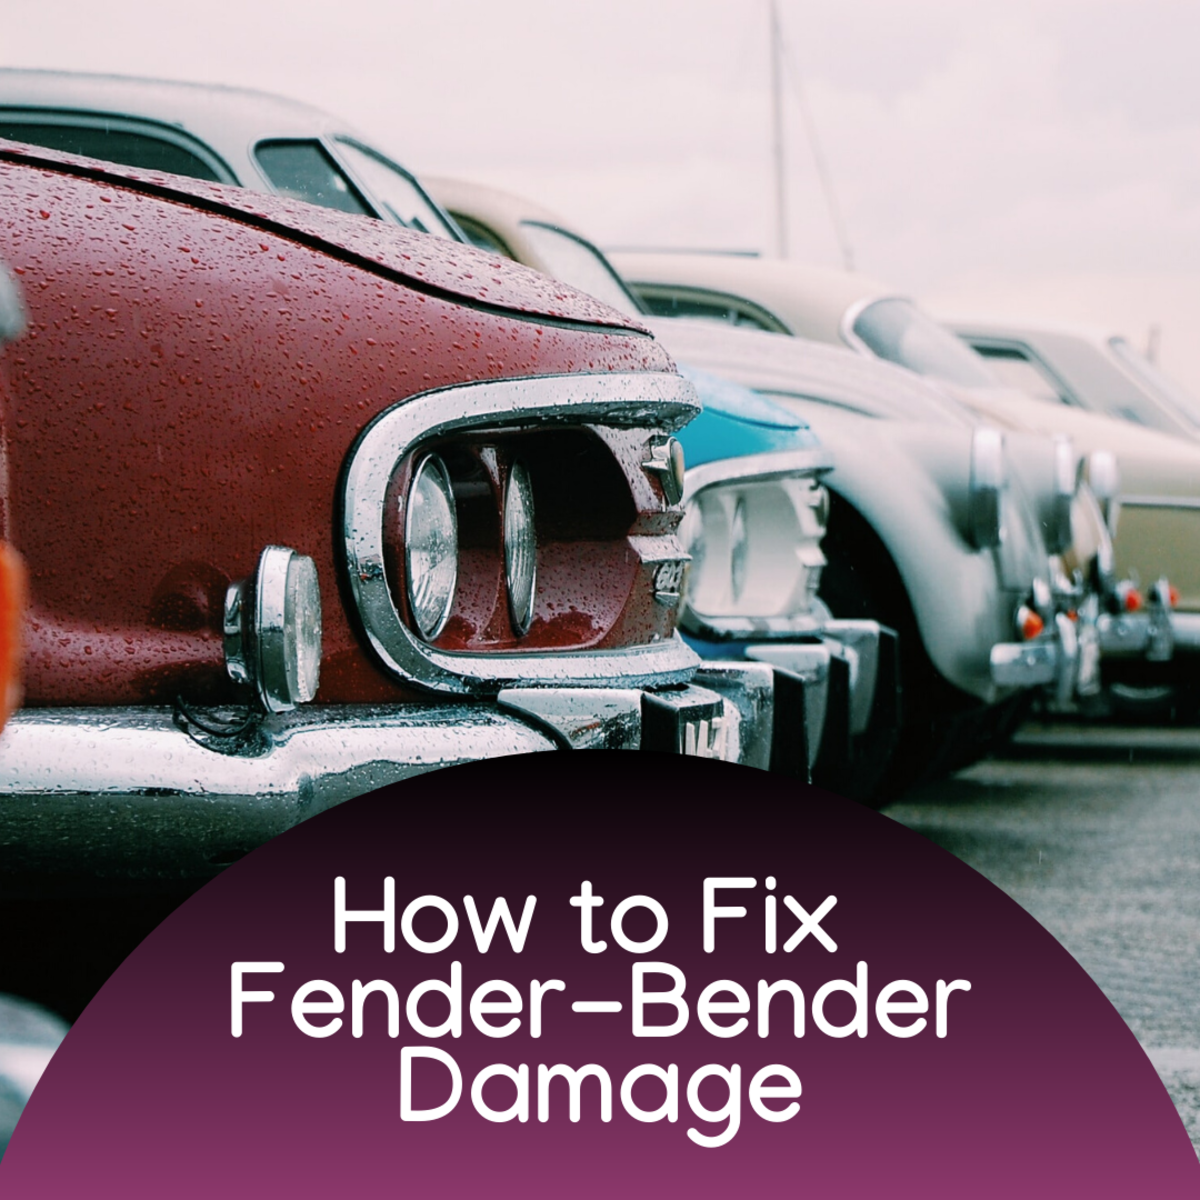 How to Fix Fender-Bender Damage and Save Car Insurance Claims